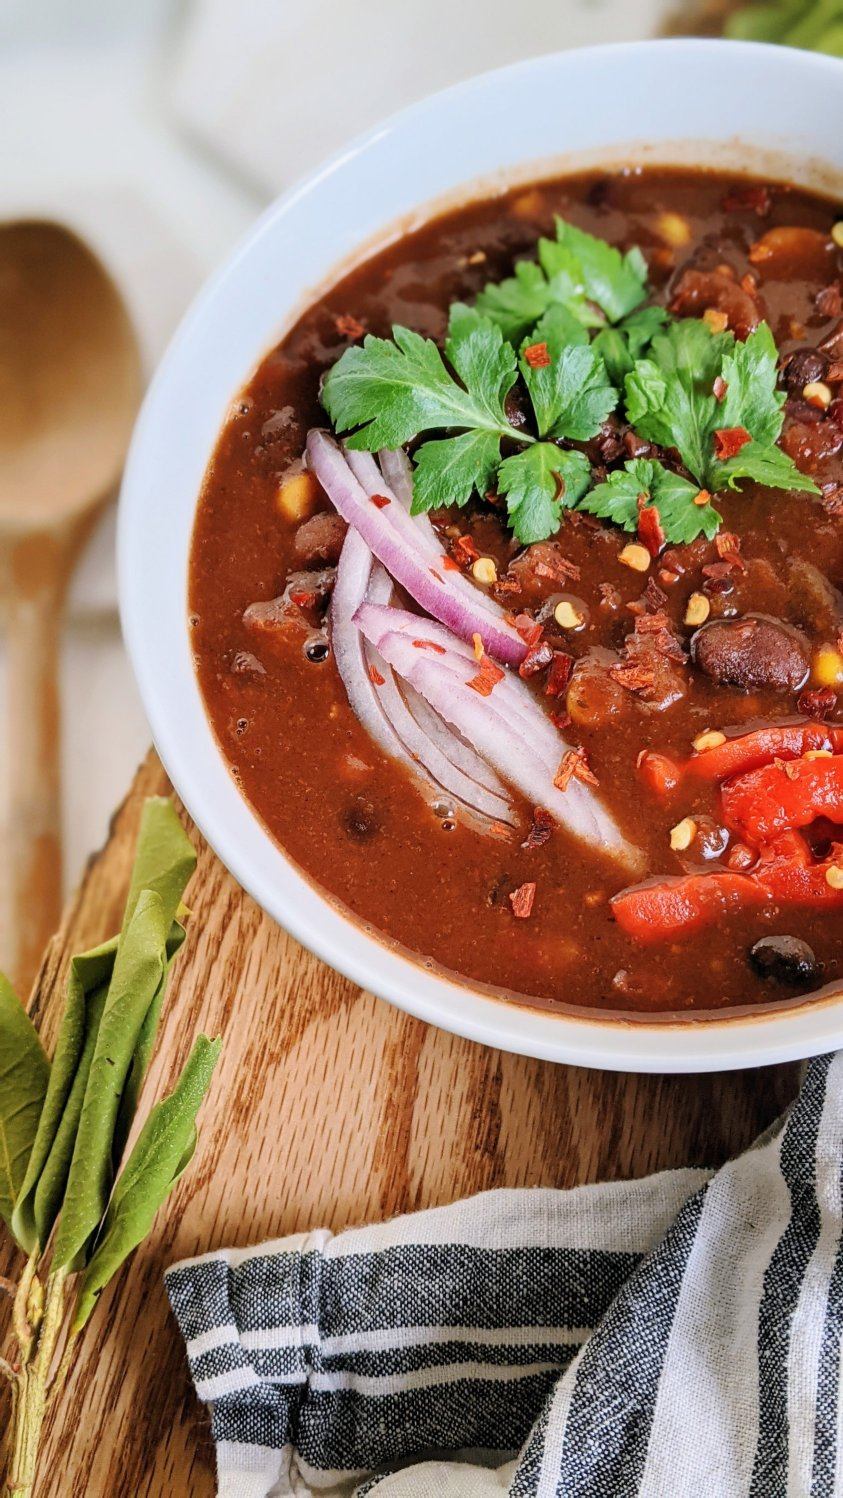 high pritein bean chili recipe vegan gluten free vegetarian meatless meals veganuary winter chili spicy superbowl sunday recipes healthy meal dinners meal prep vegan bean chili meal prepping